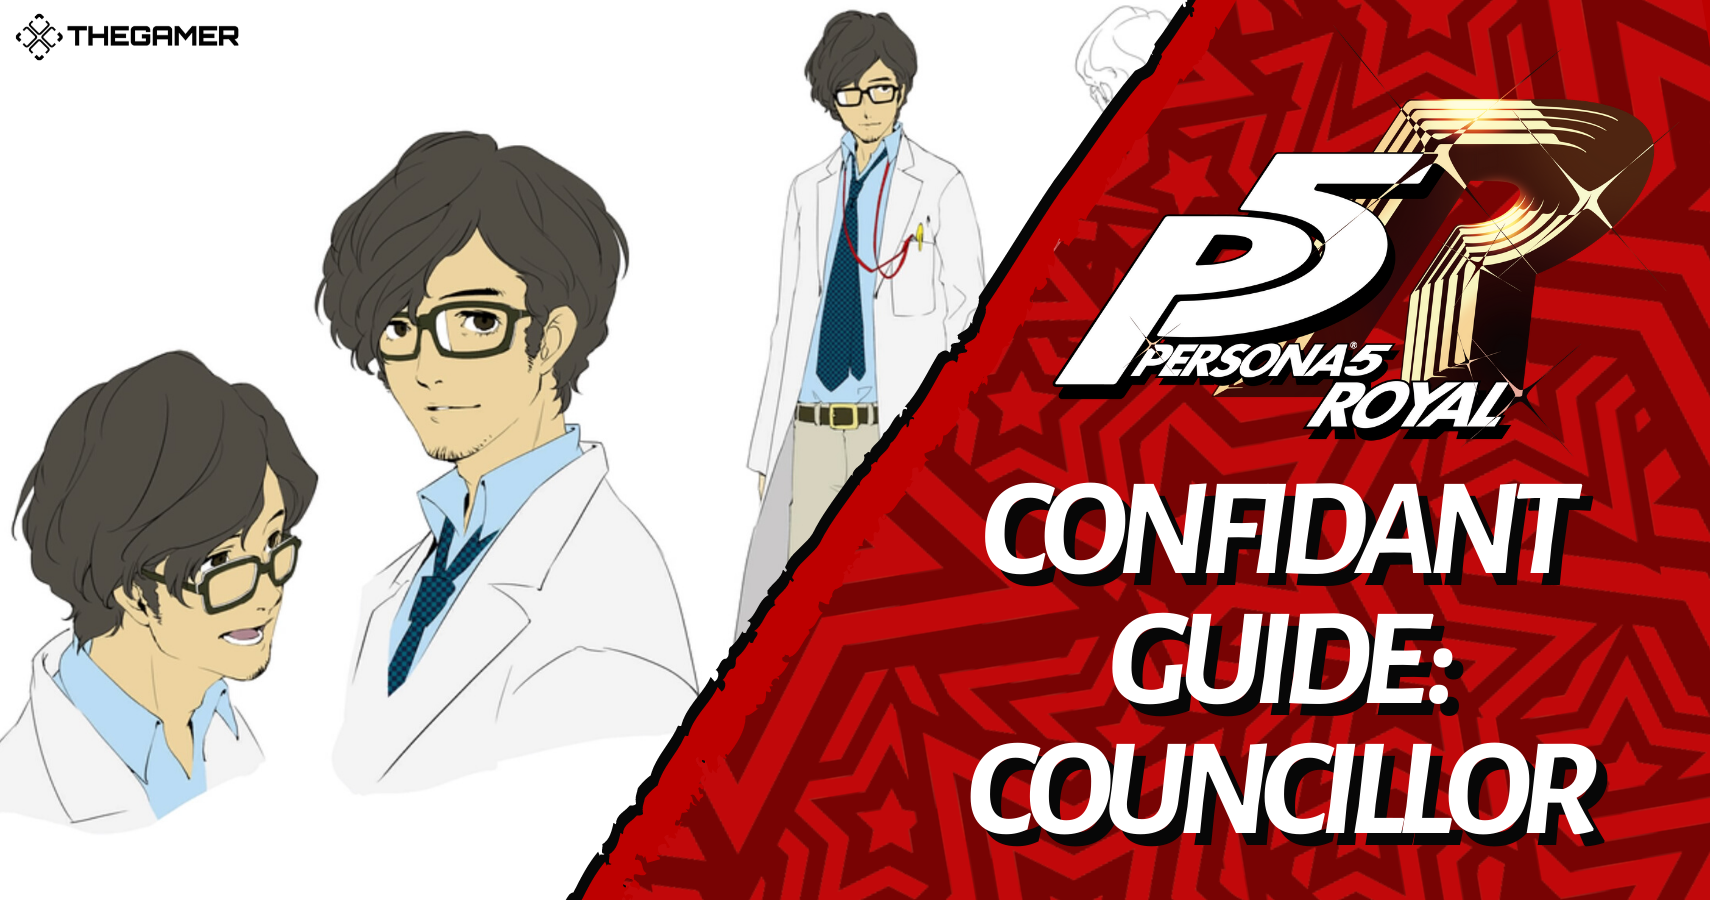 Persona 5 Royal Confidant Guide Councillor Takuto Maruki